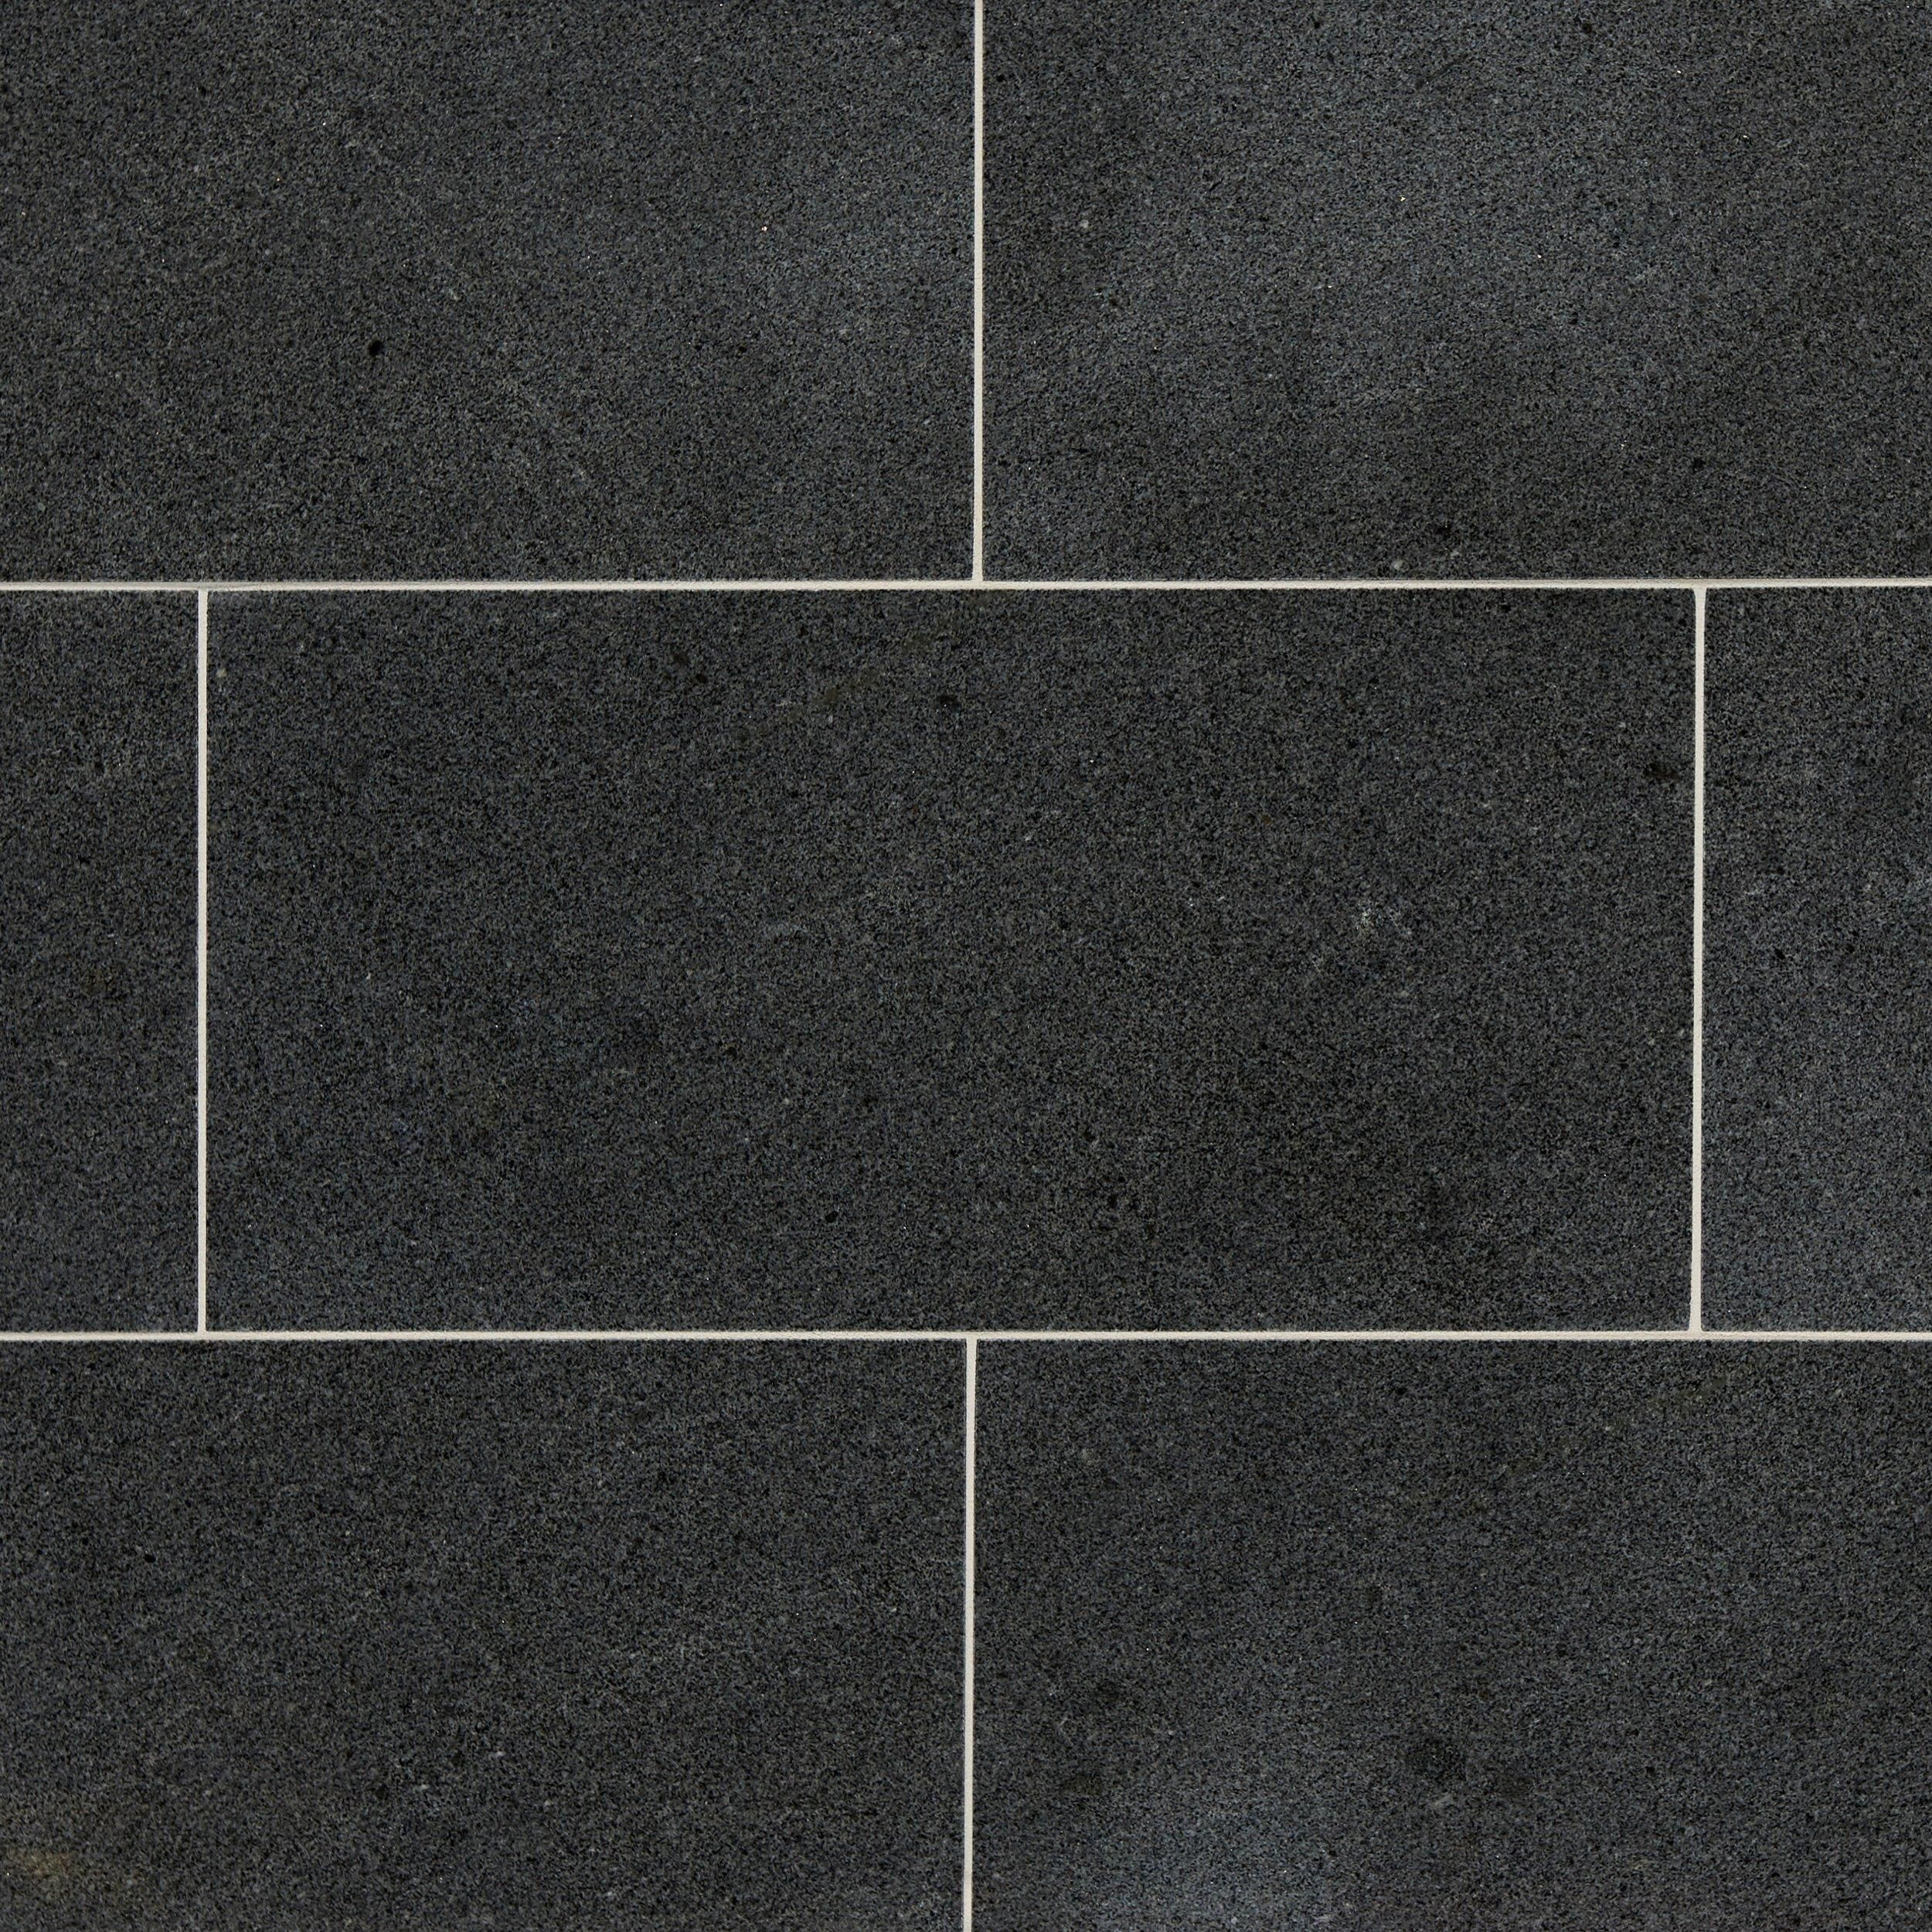 Impala Black Granite Tile Floor Decor In 2020 Black Granite Tile Granite Tile Grey Polished Porcelain Tiles